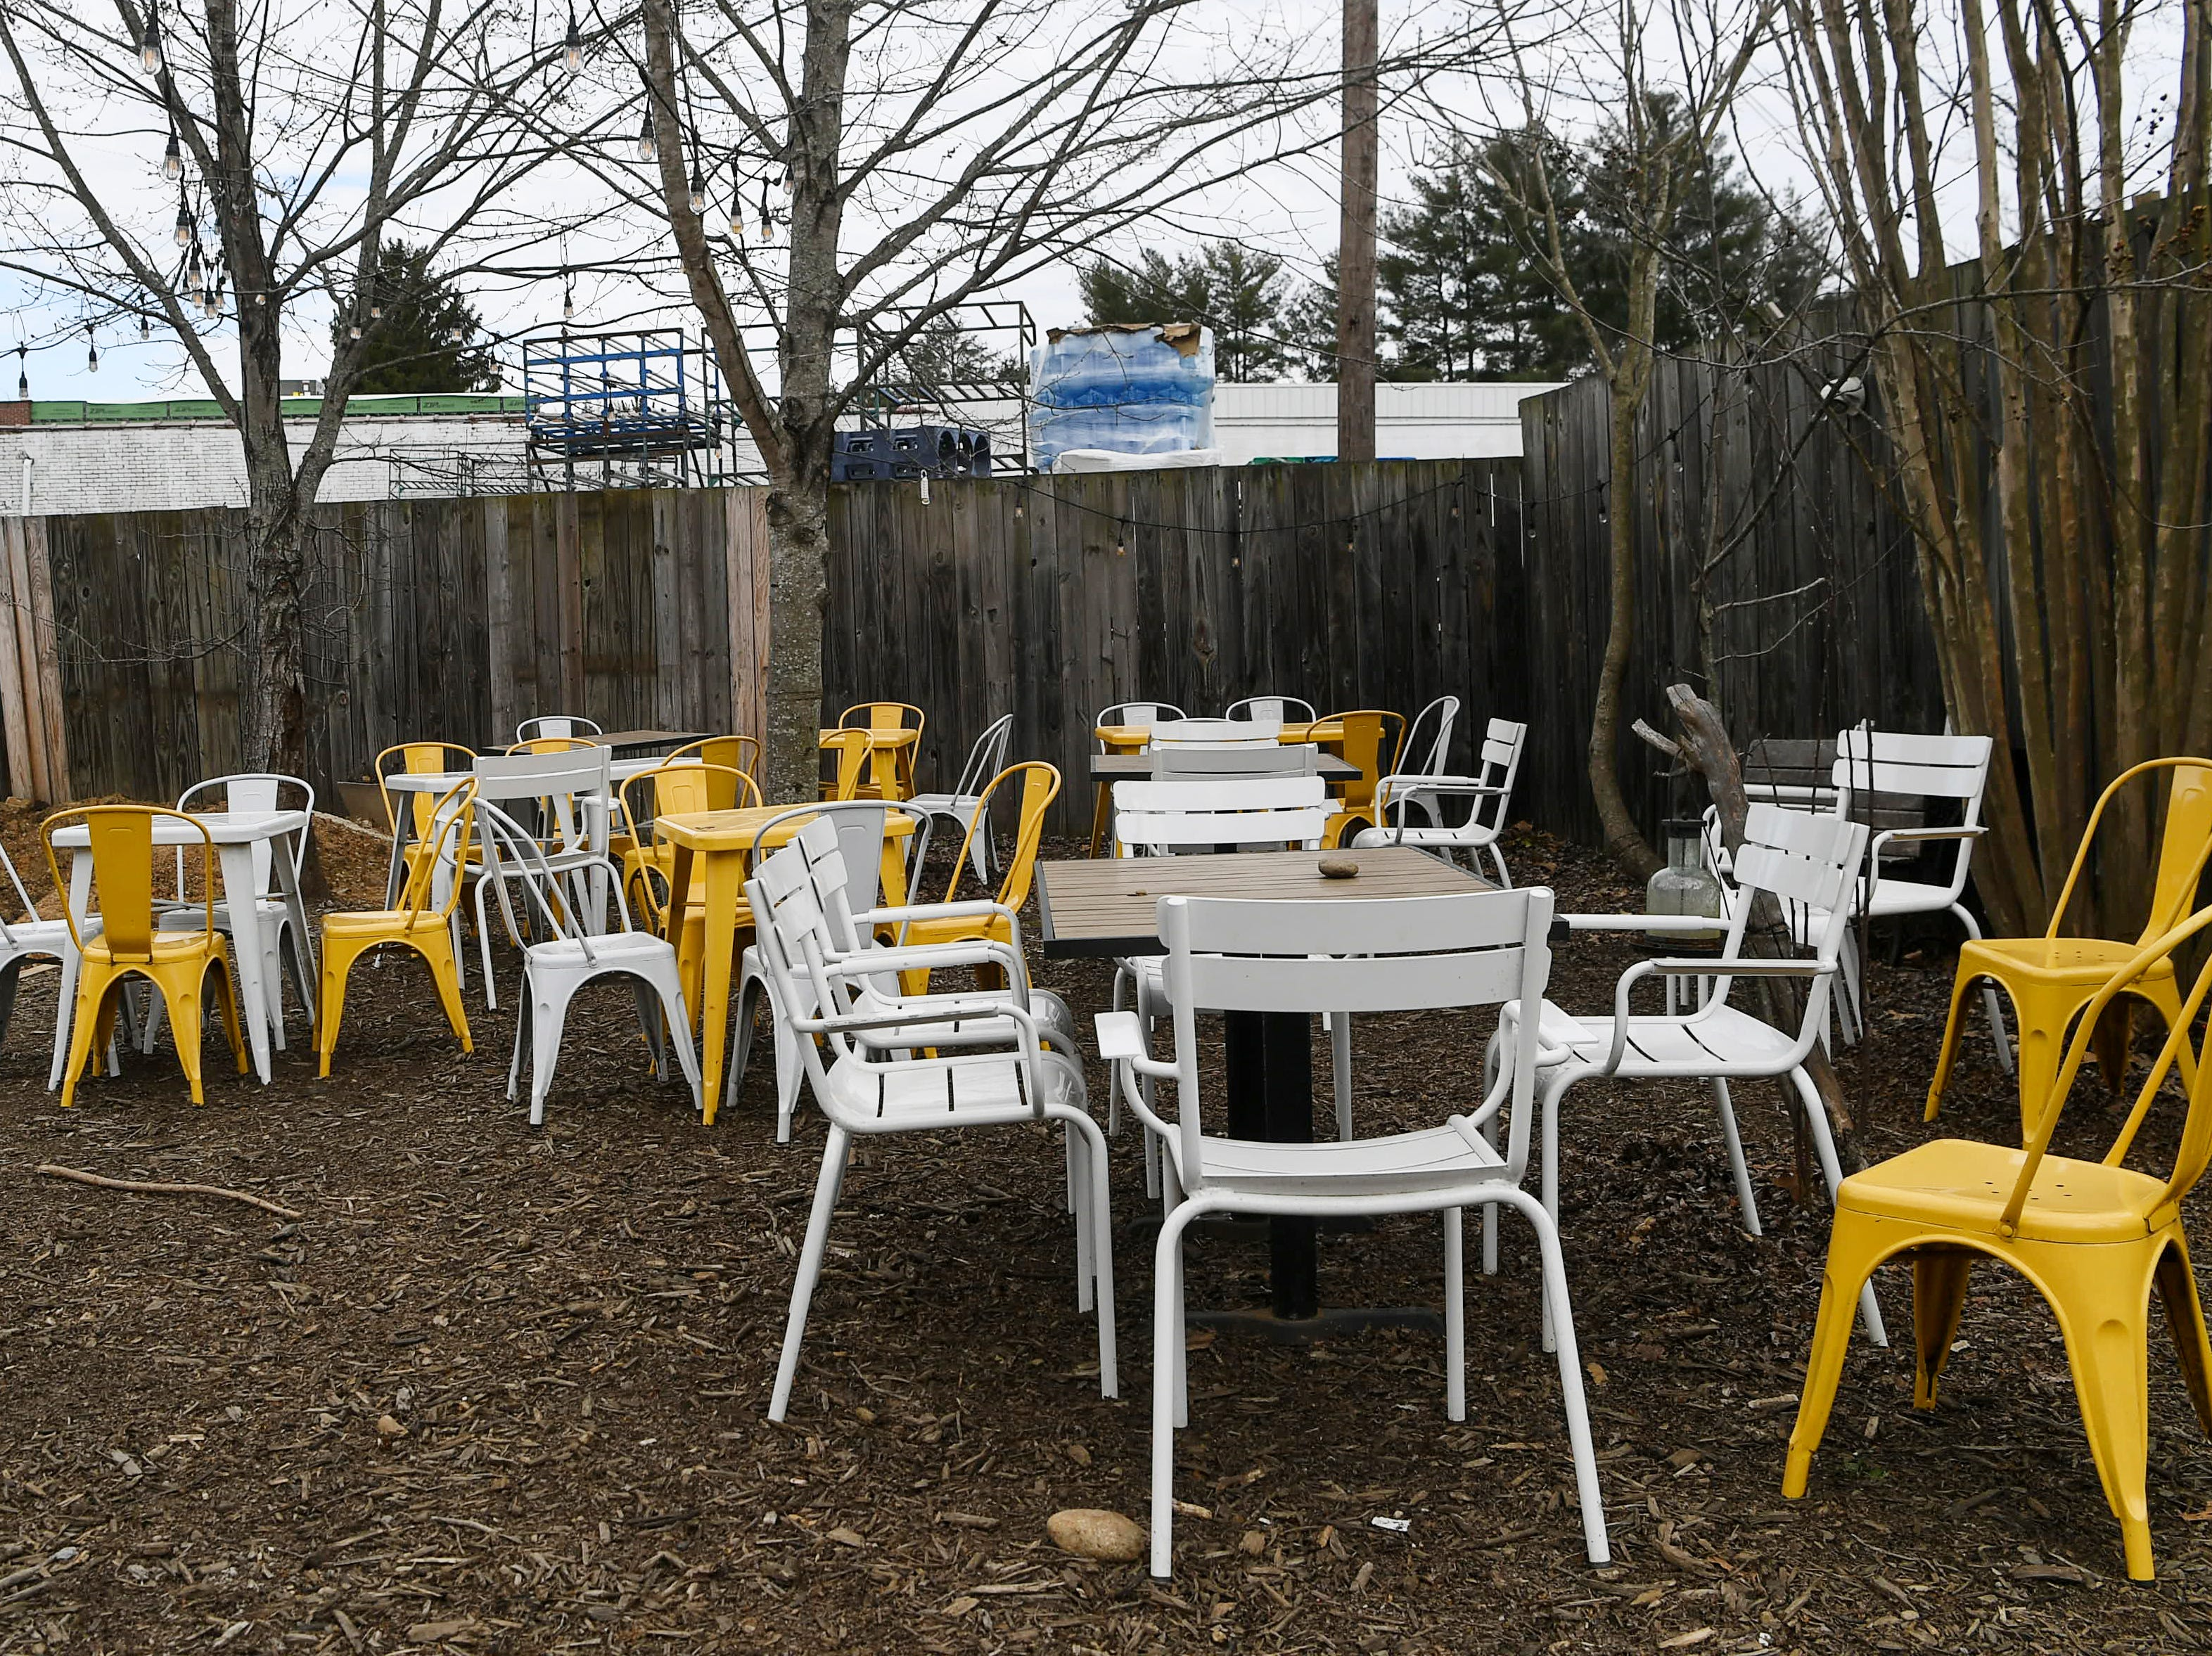 Outdoor seating at OWL Bakery in West Asheville March 7, 2019.